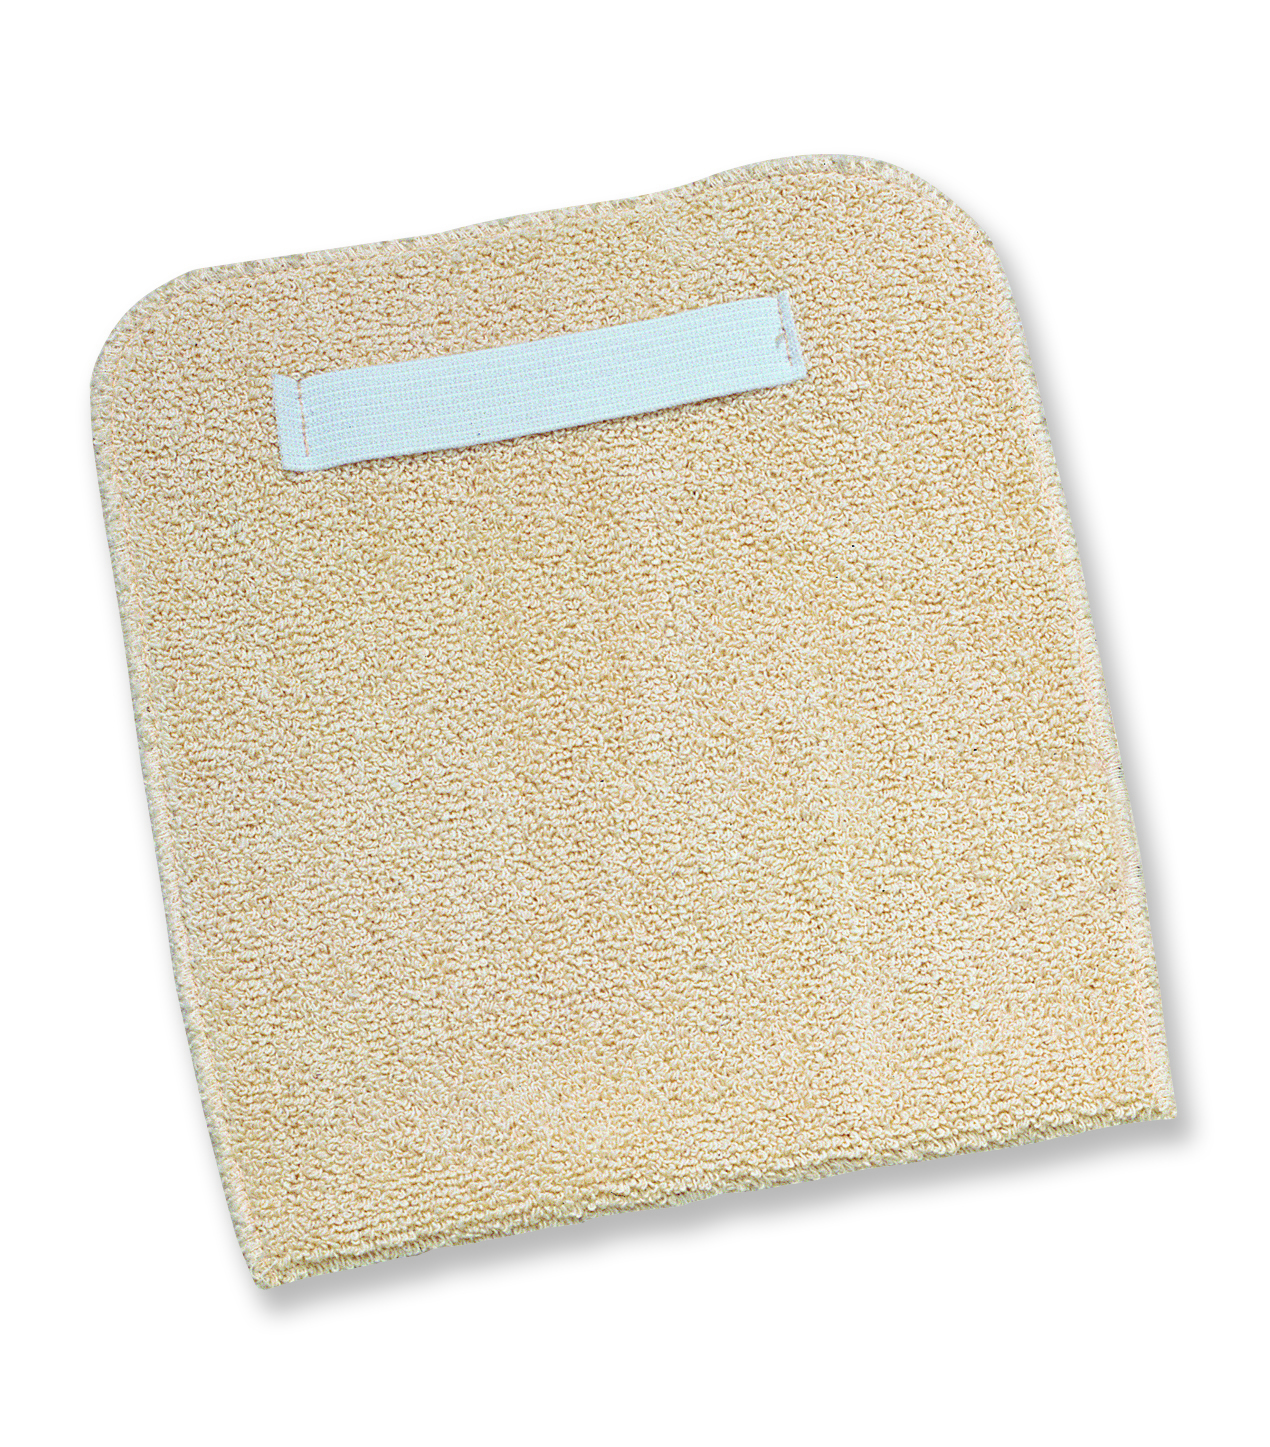 G-PAD - Jomac® Bakers Pads-Heat Resistant Gloves-Jomac® Bakers Pads, Protects up to 460°F-9